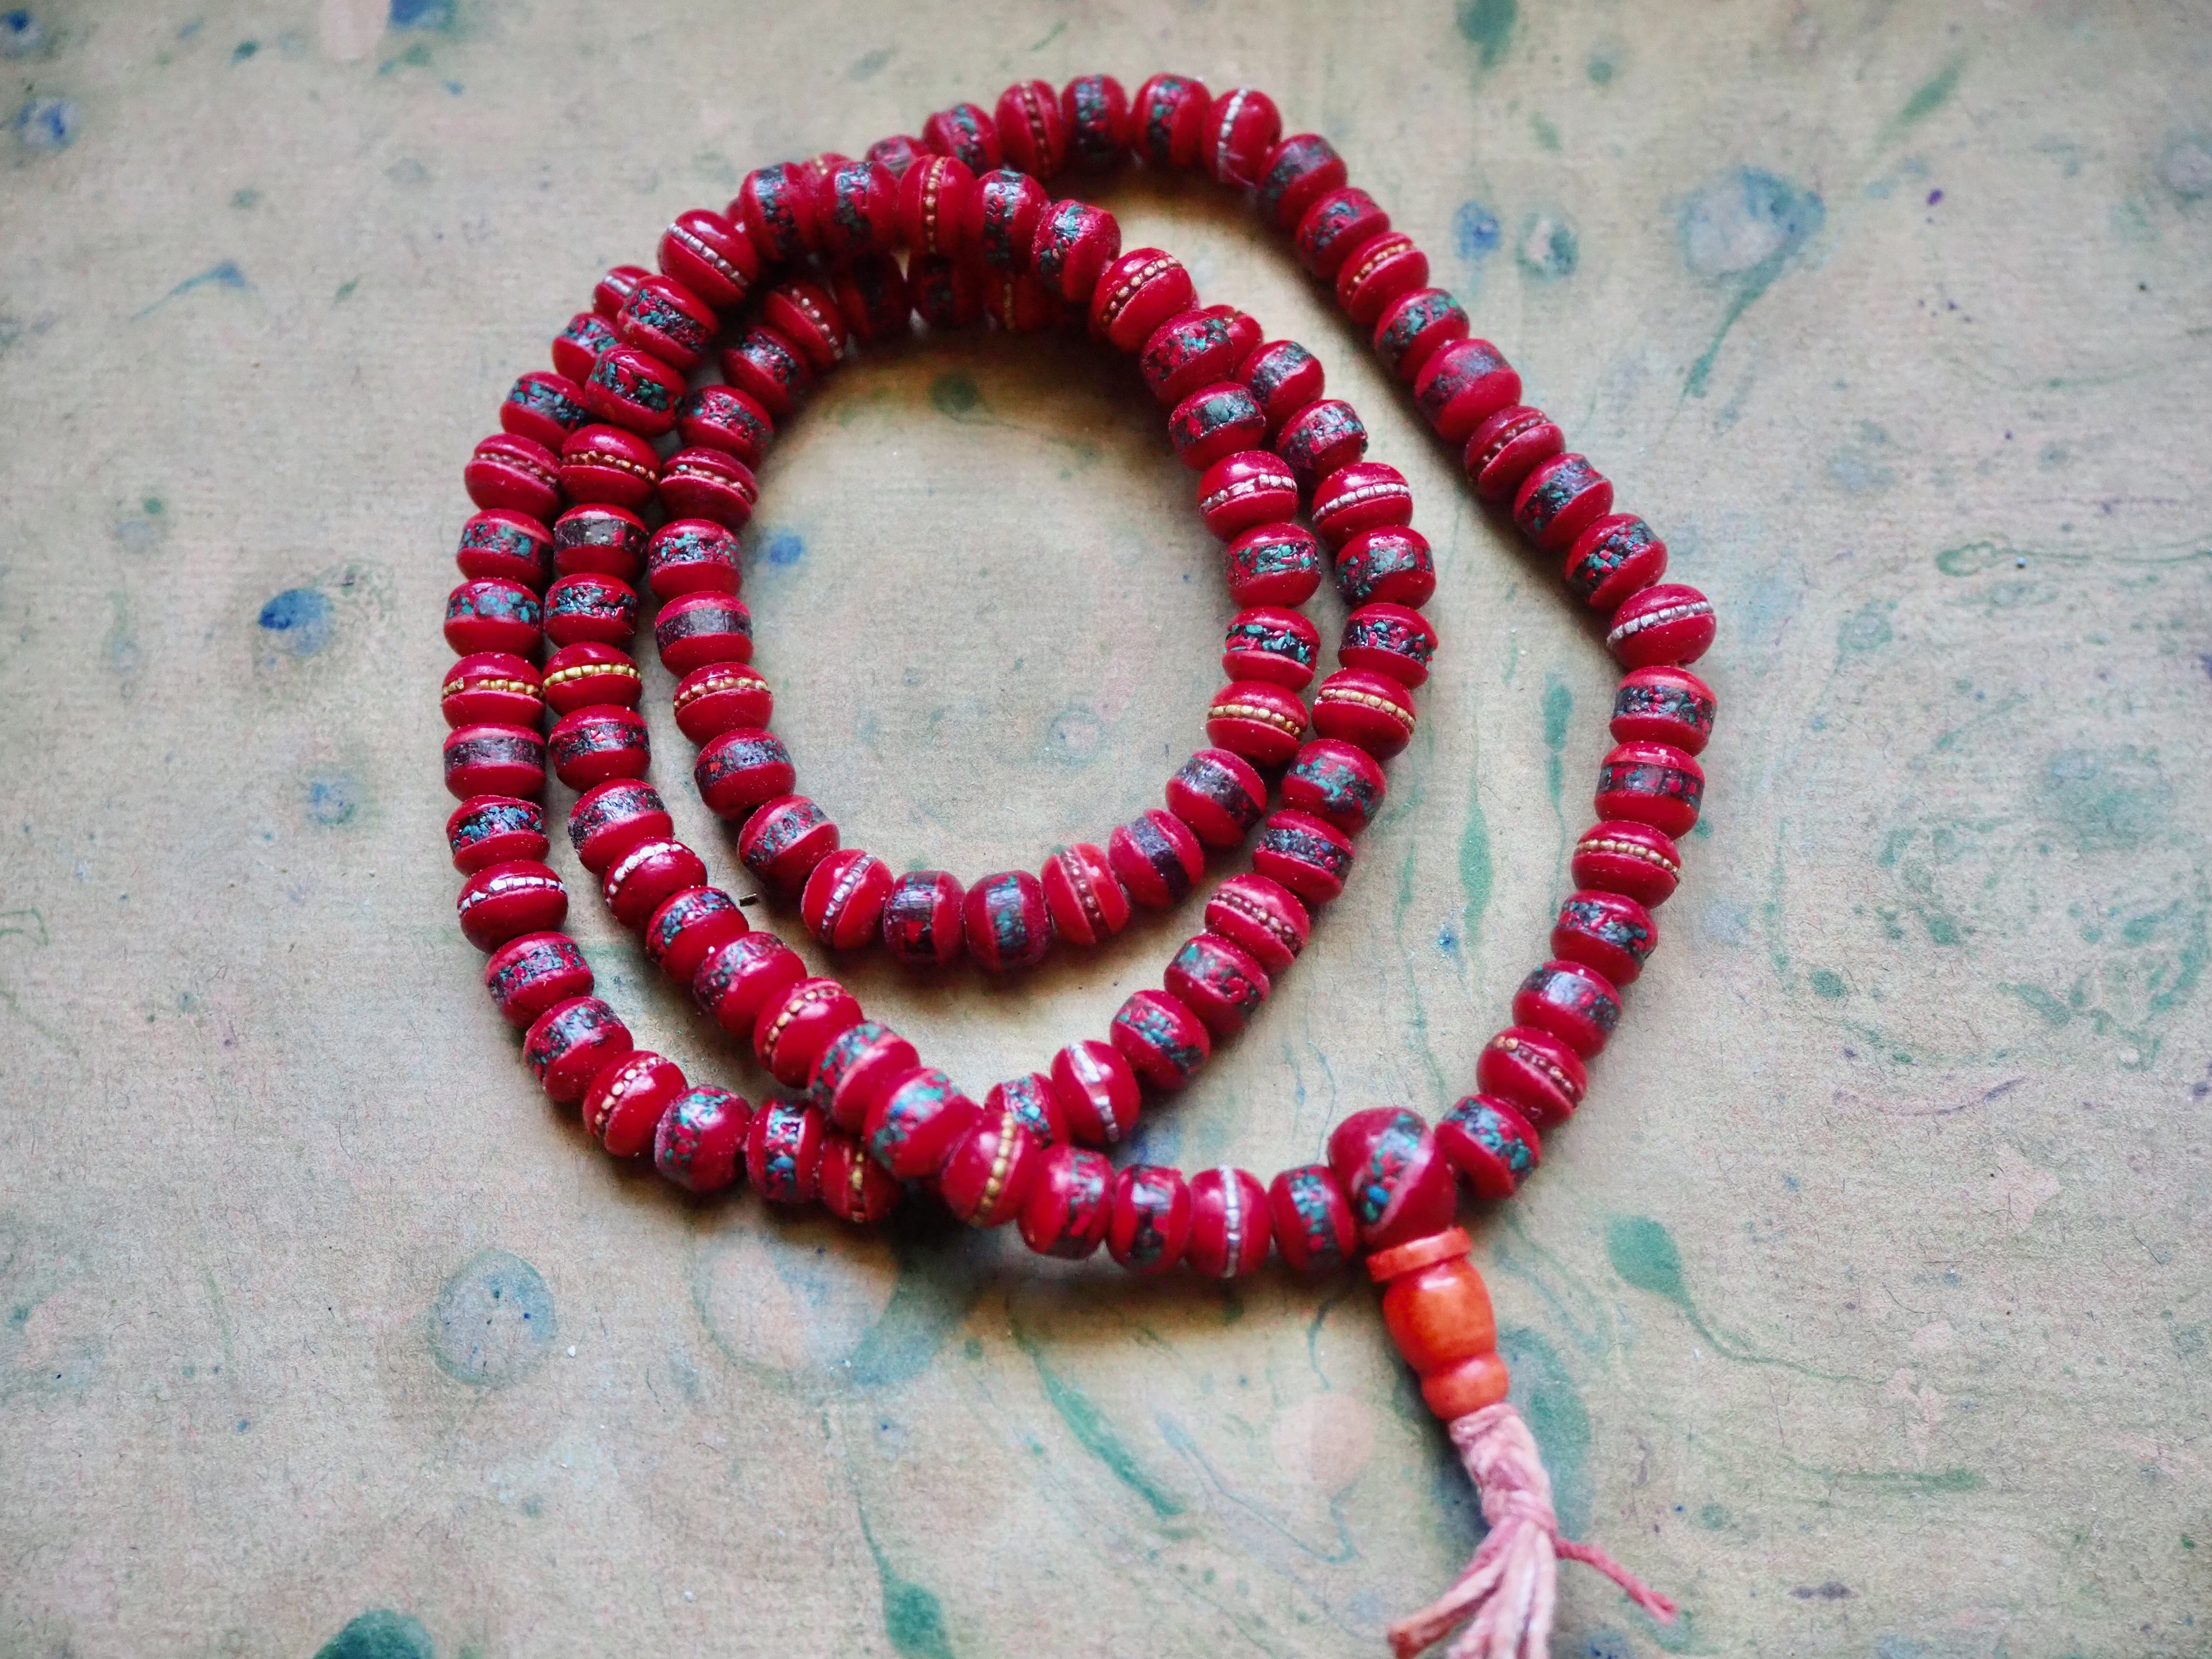 108 Red Yak Bone 7x9mm Rondelle Beads with Inlaid Copal and Turquoise Chips